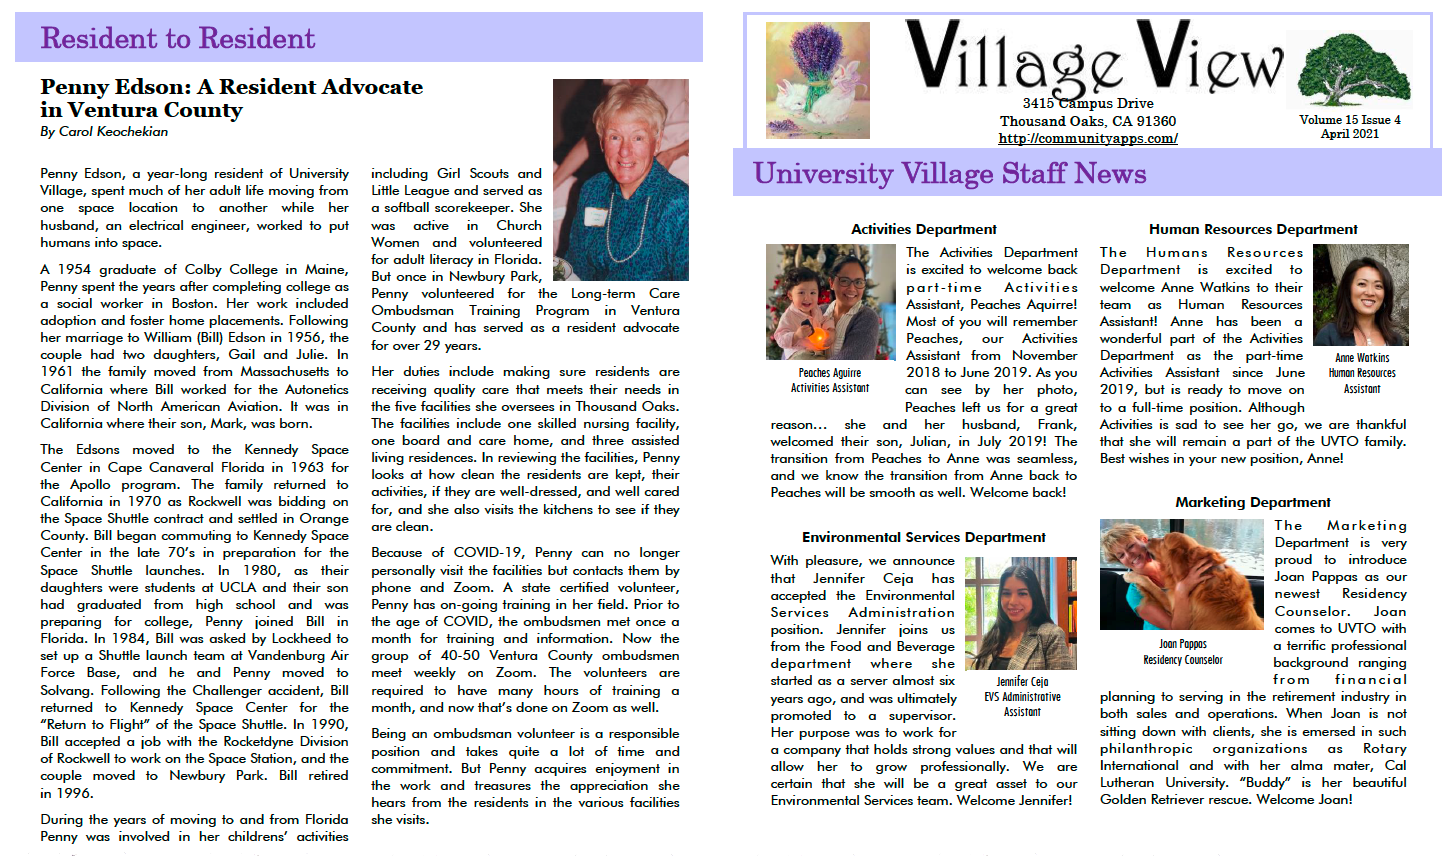 Story On Penny Edson And Village Staff News April 2021